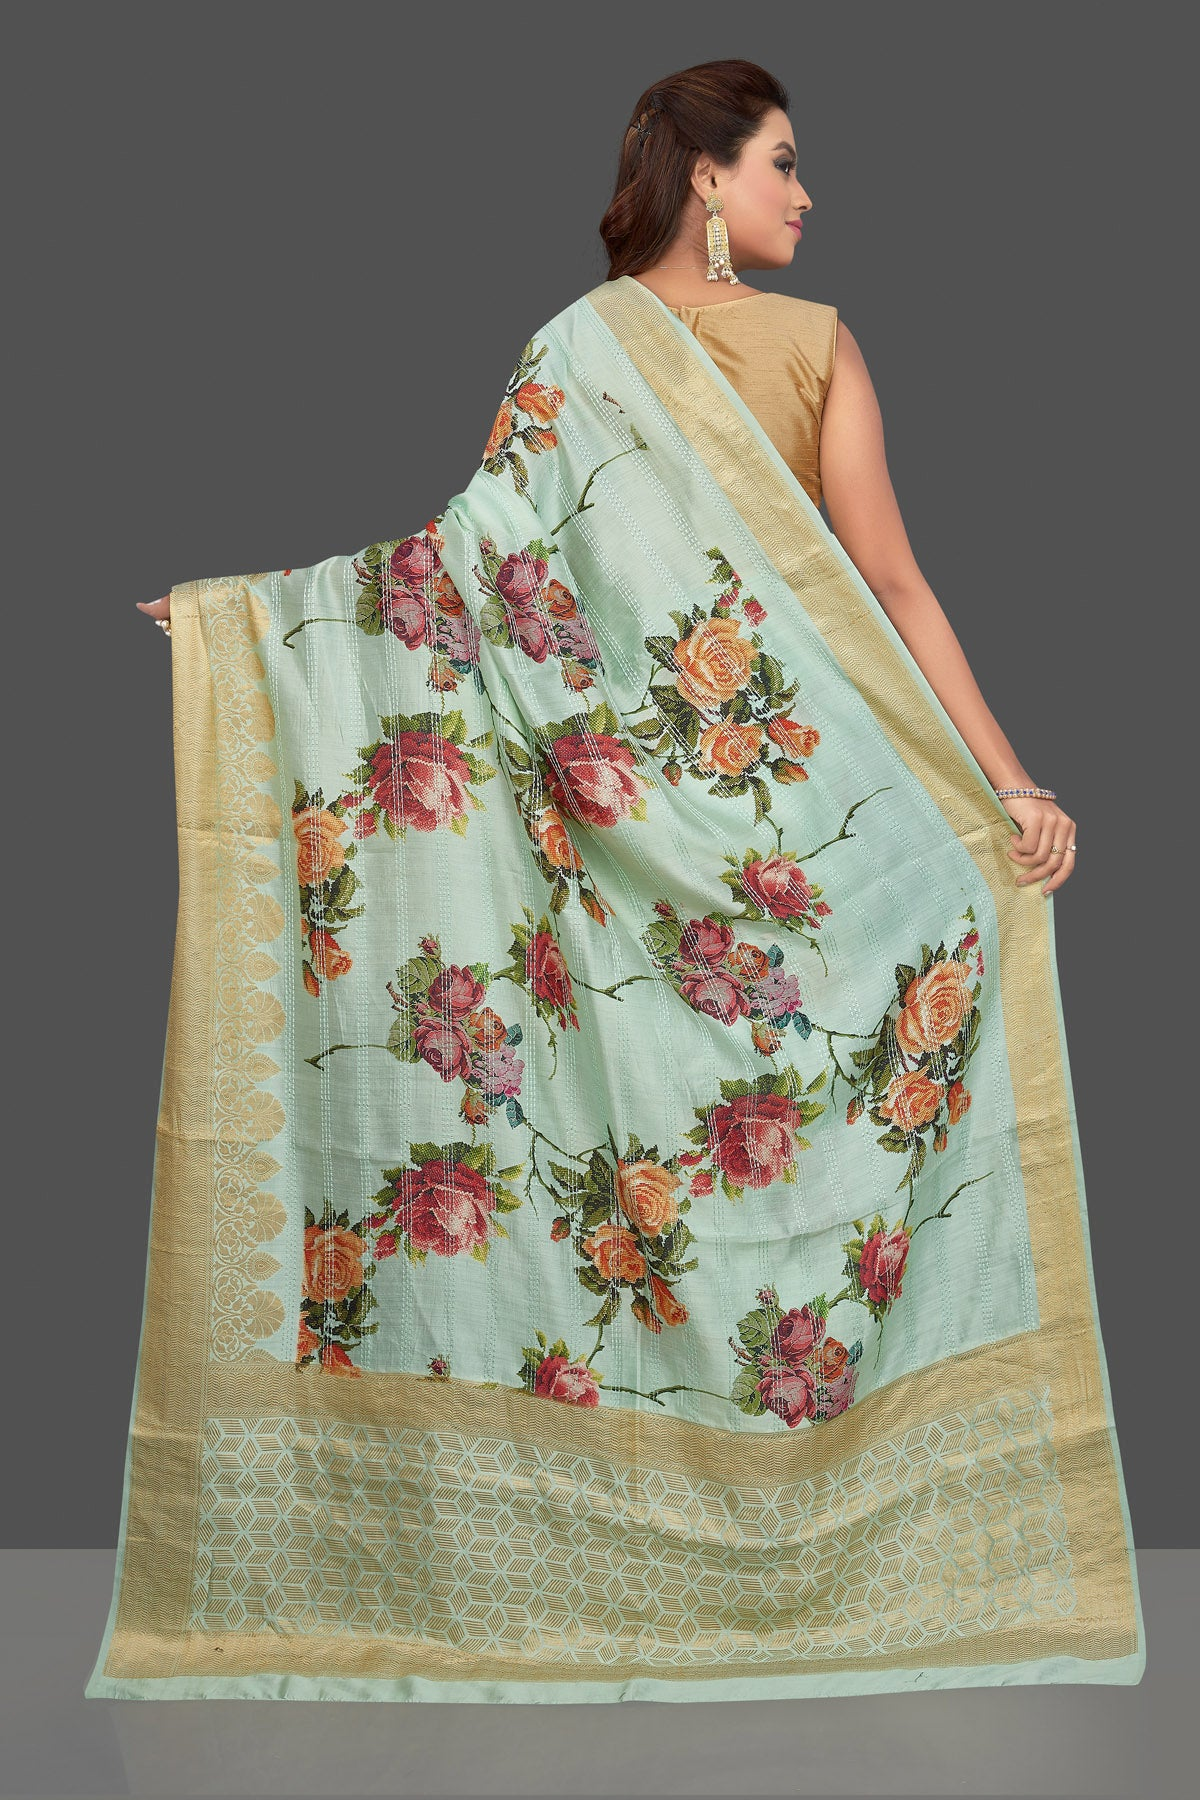 Buy beautiful mint green floral print muga silk saree online in USA with golden zari border. Make you presence felt with your Indian style on special occasions in beautiful designer sarees, handwoven sarees, tussar sarees, muga silk sarees from Pure Elegance Indian fashion store in USA.-back